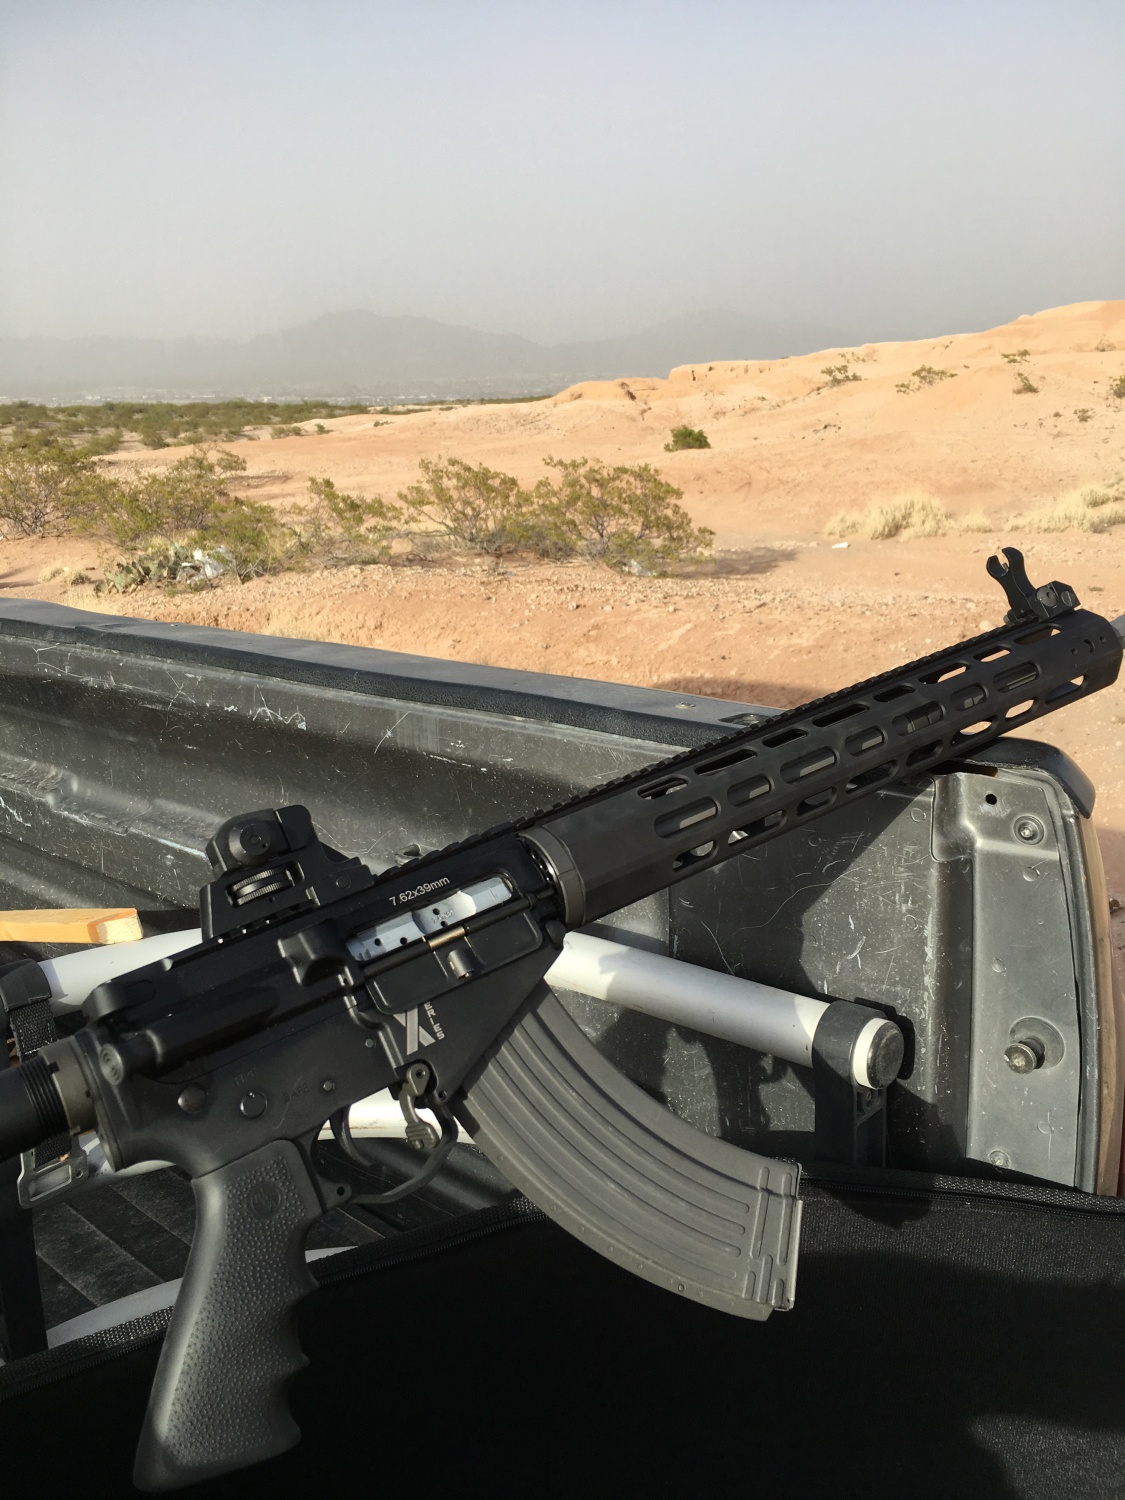 Out playing with the LAR-47 X-1, trying various ammunition and magazine types. Note a good ole' El Paso sandstorm in the background.